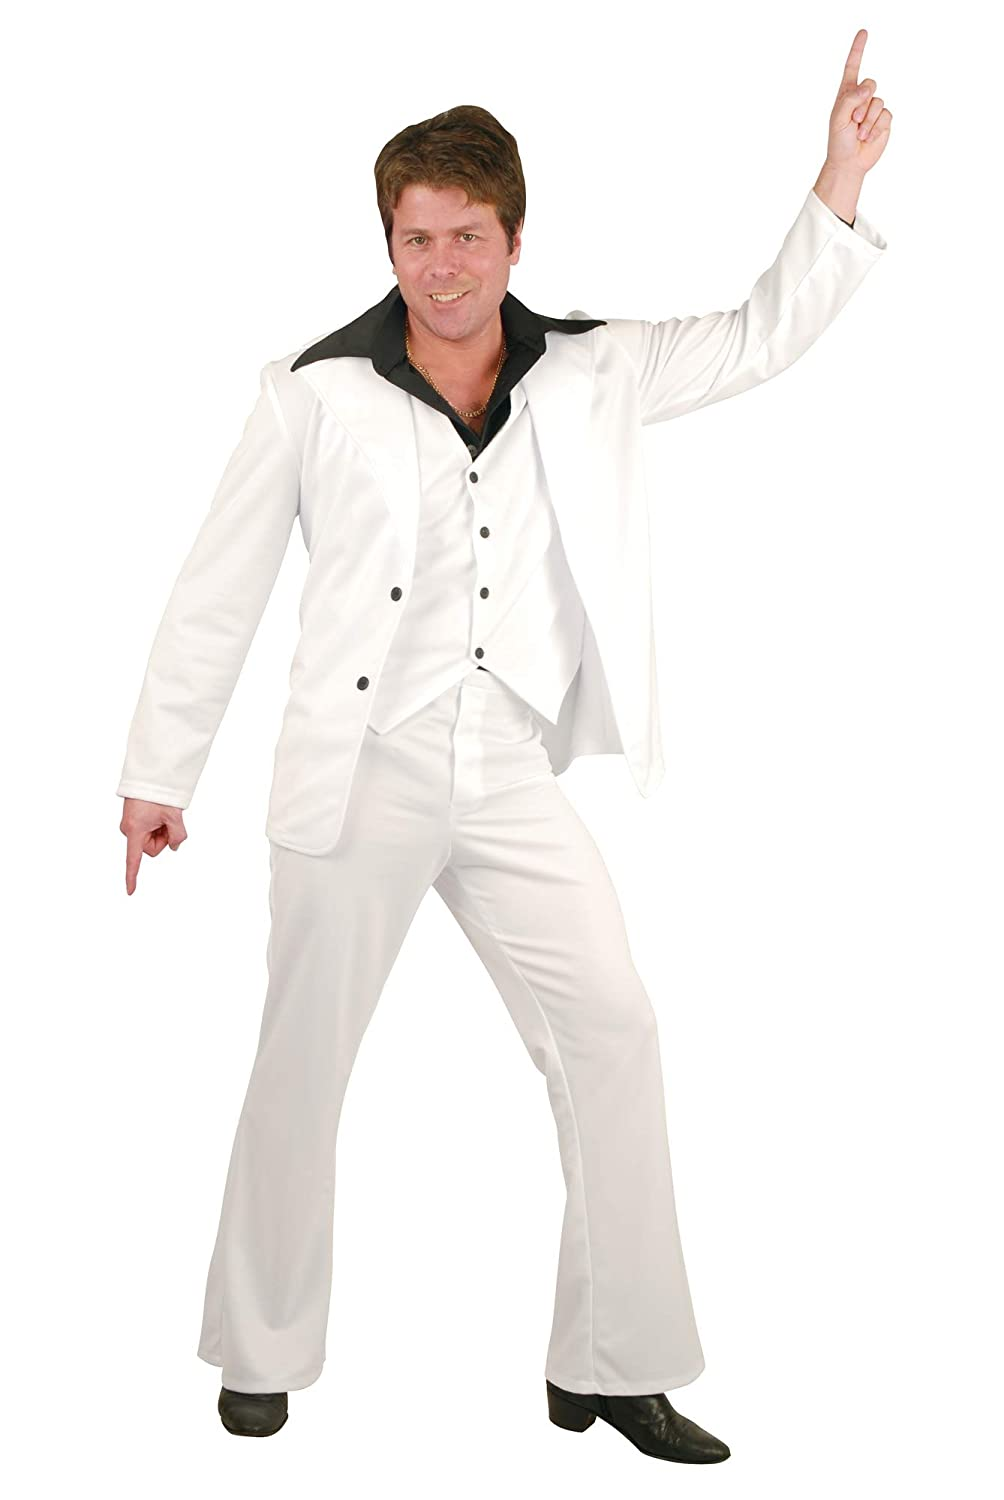 Men's Vintage Style Suits, Classic Suits Charades Mens Disco Fever Suit $51.64 AT vintagedancer.com